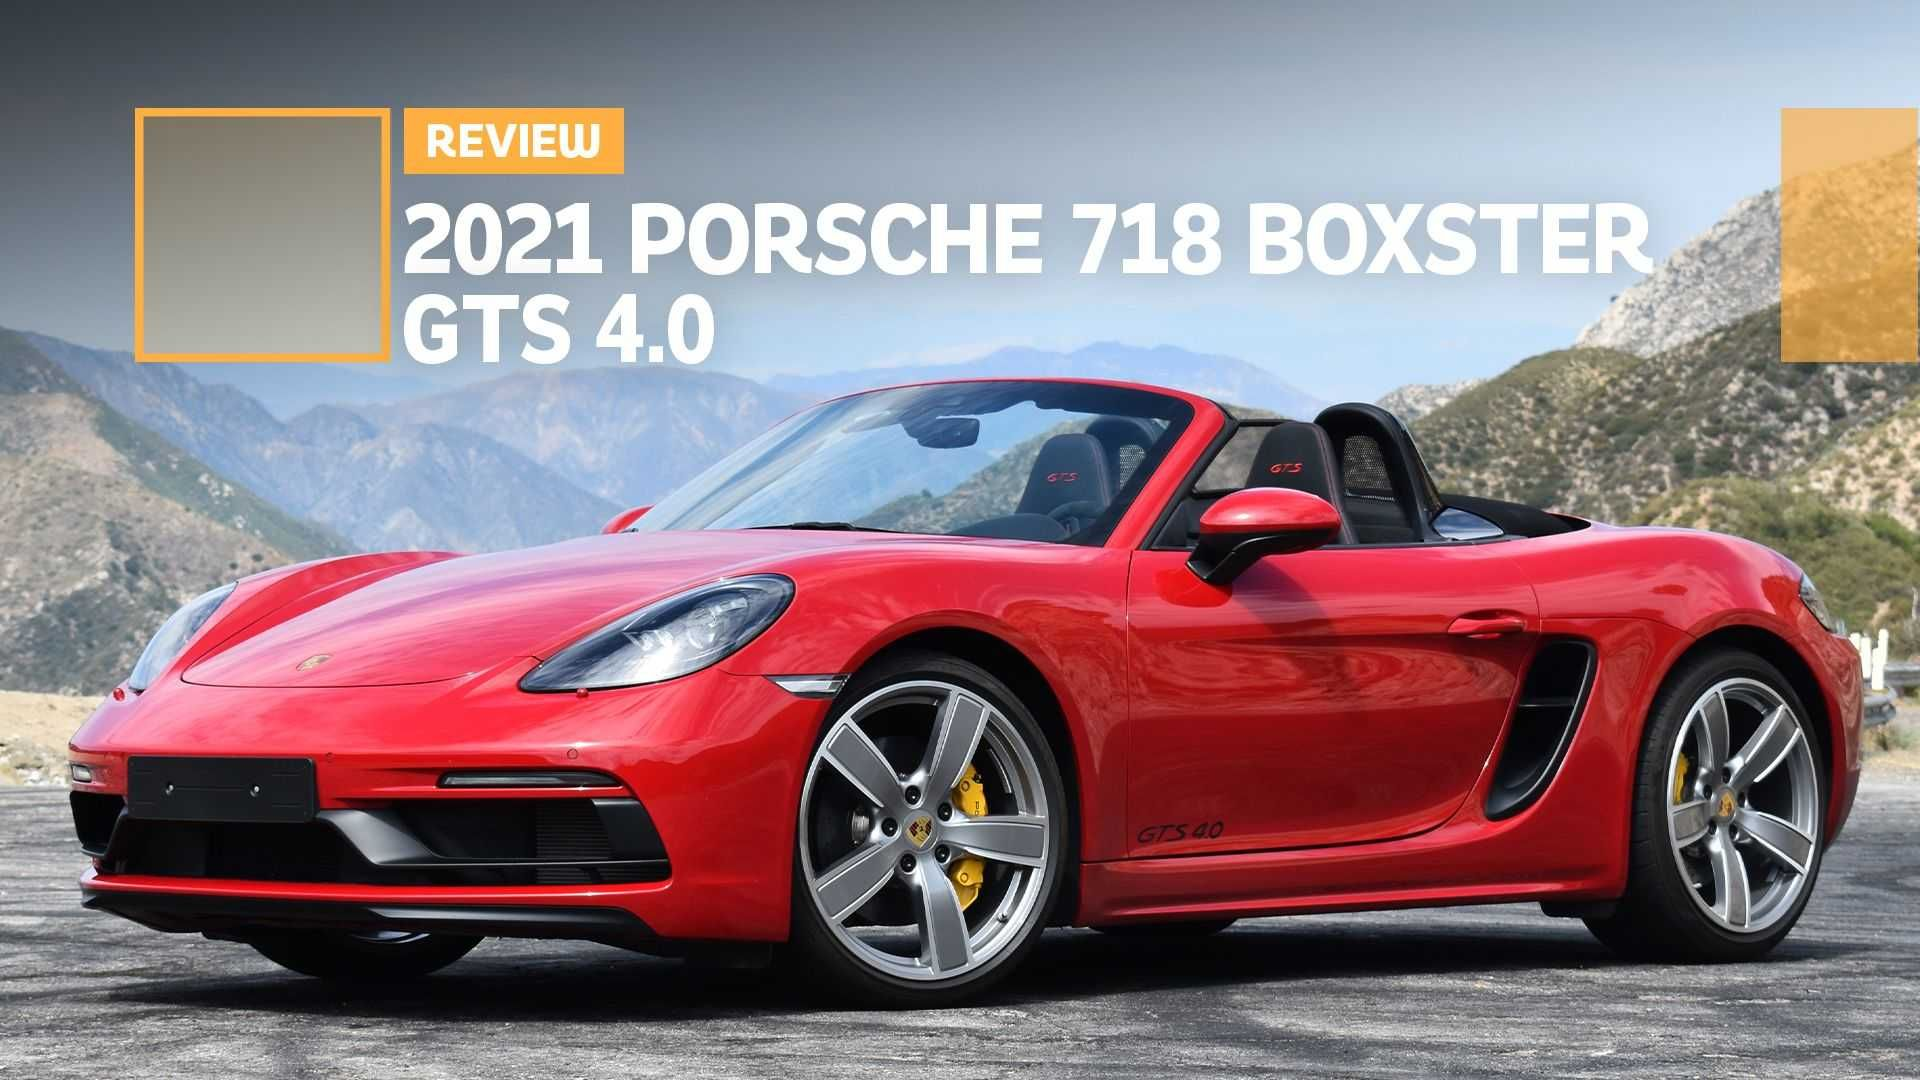 A Naturally Aspirated Flat Six Manual Transmission And Top Down Driving Experience Make The 2021 Porsche Porsche 718 Boxster Gts Porsche 718 Boxster Porsche